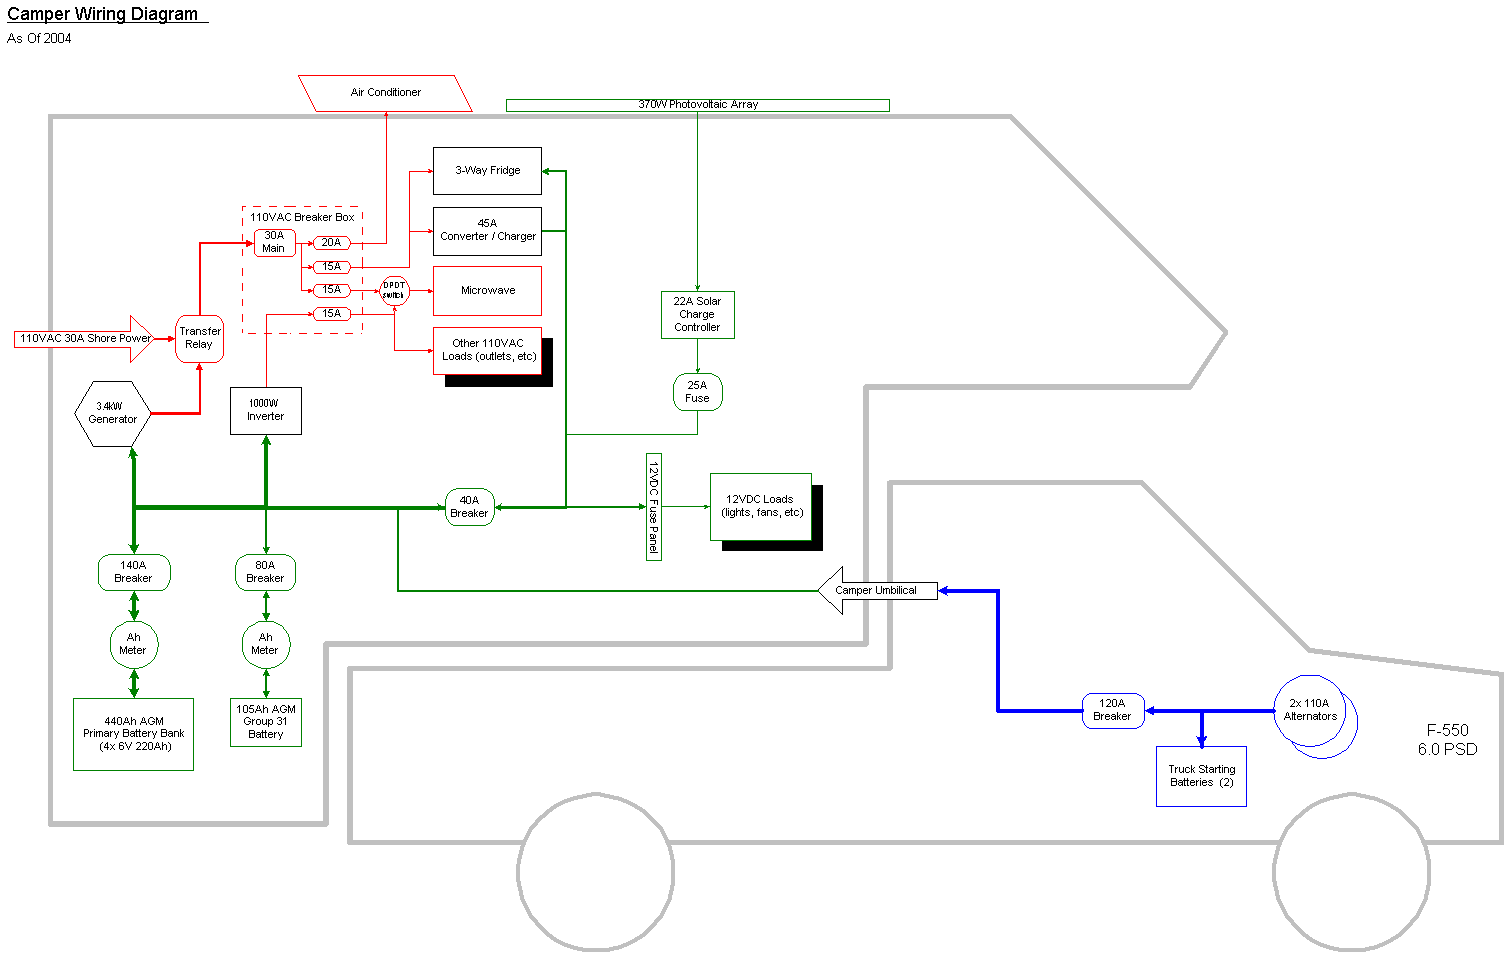 2004Diagram rv wiring diagrams 6 pole round wiring diagram \u2022 wiring diagrams truck camper wiring harness at edmiracle.co